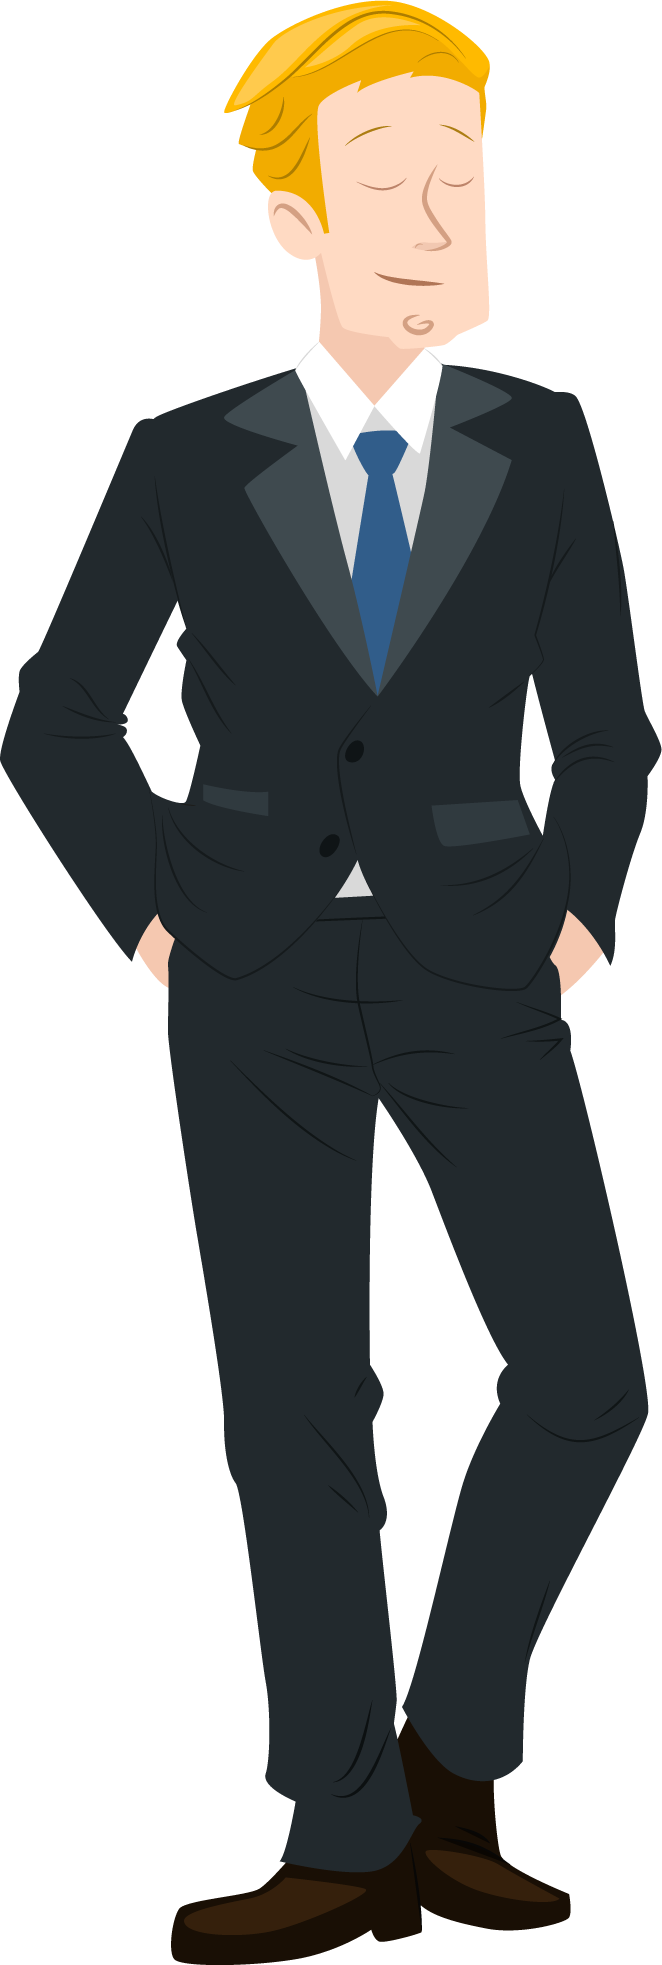 Clipart of man in suit clipart royalty free download Men in suits clipart clipart images gallery for free download ... clipart royalty free download